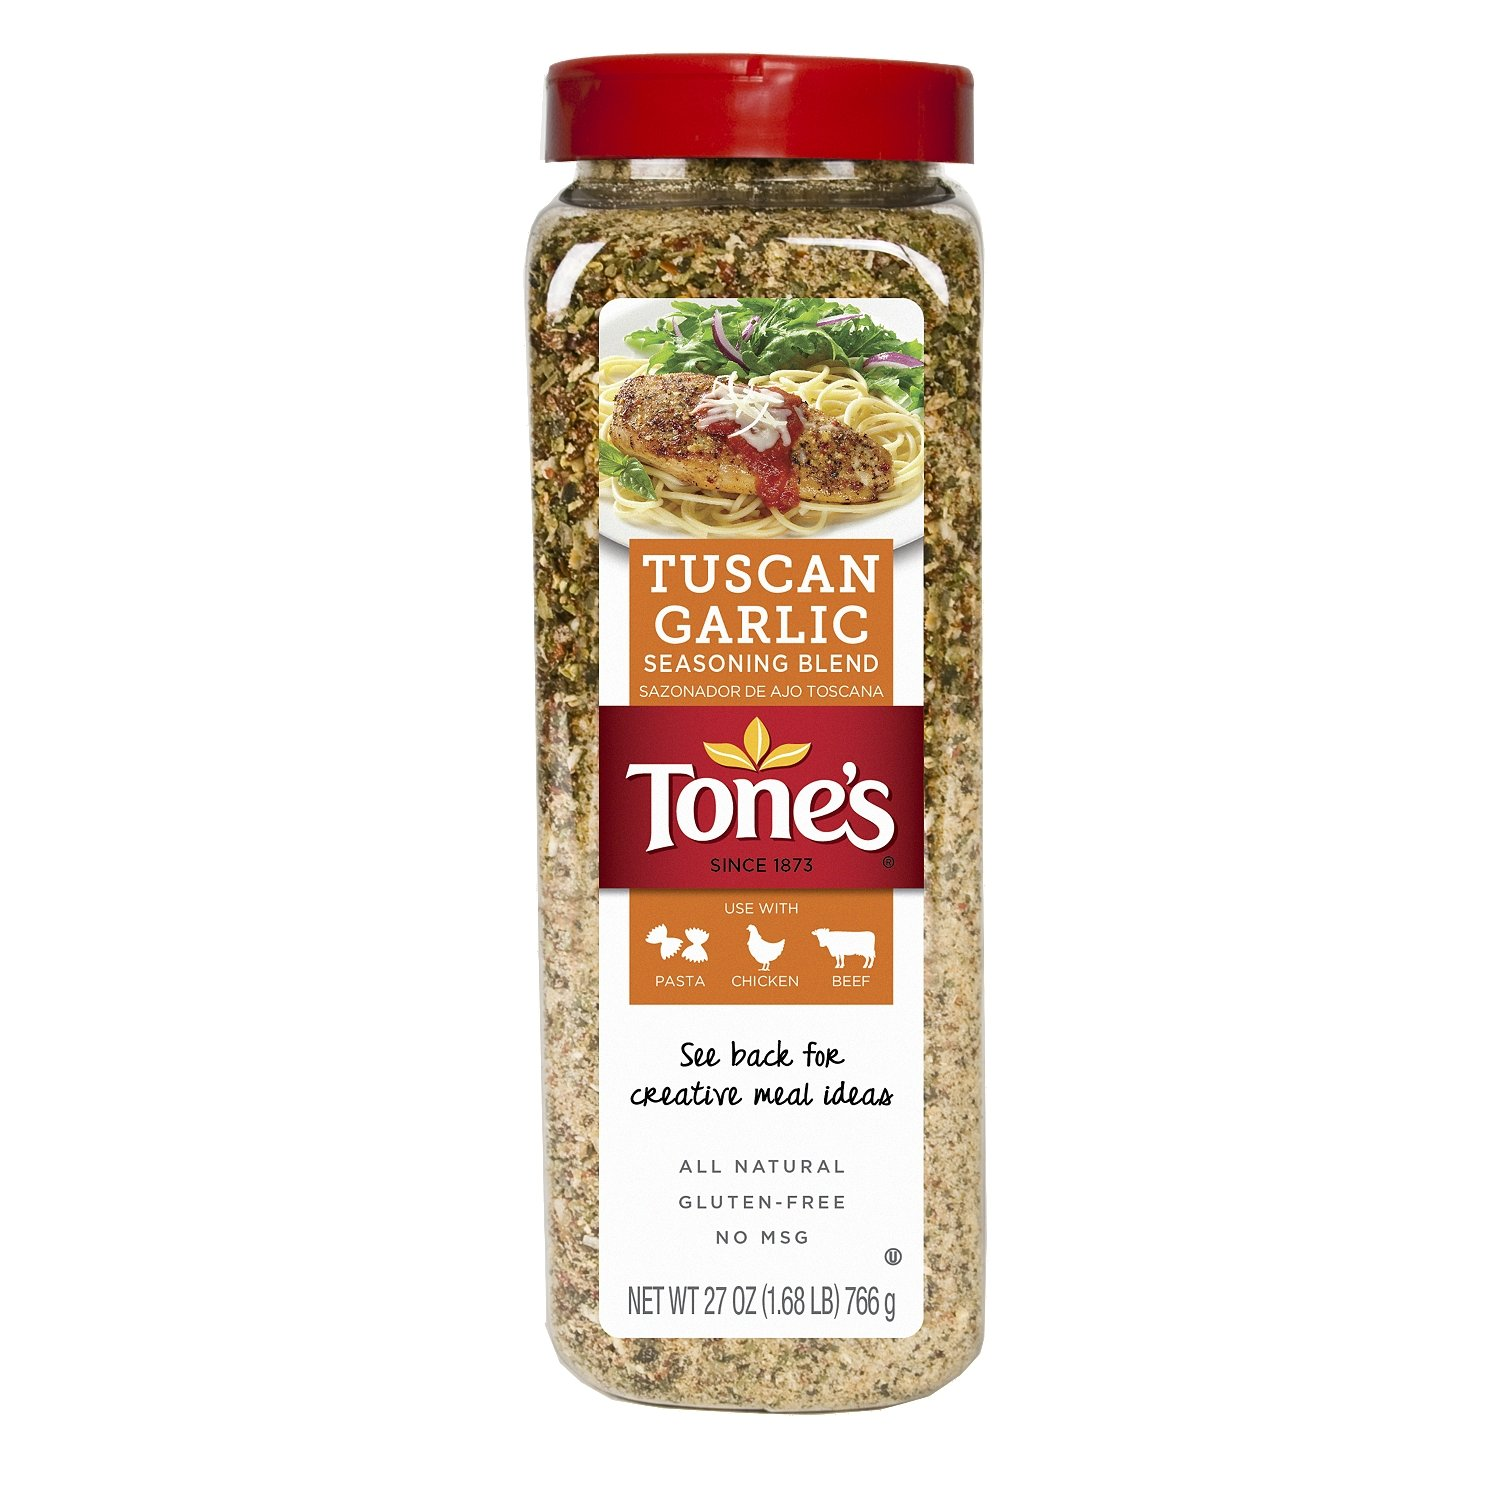 Tone's Tuscan Garlic Seasoning Blend 27 oz.